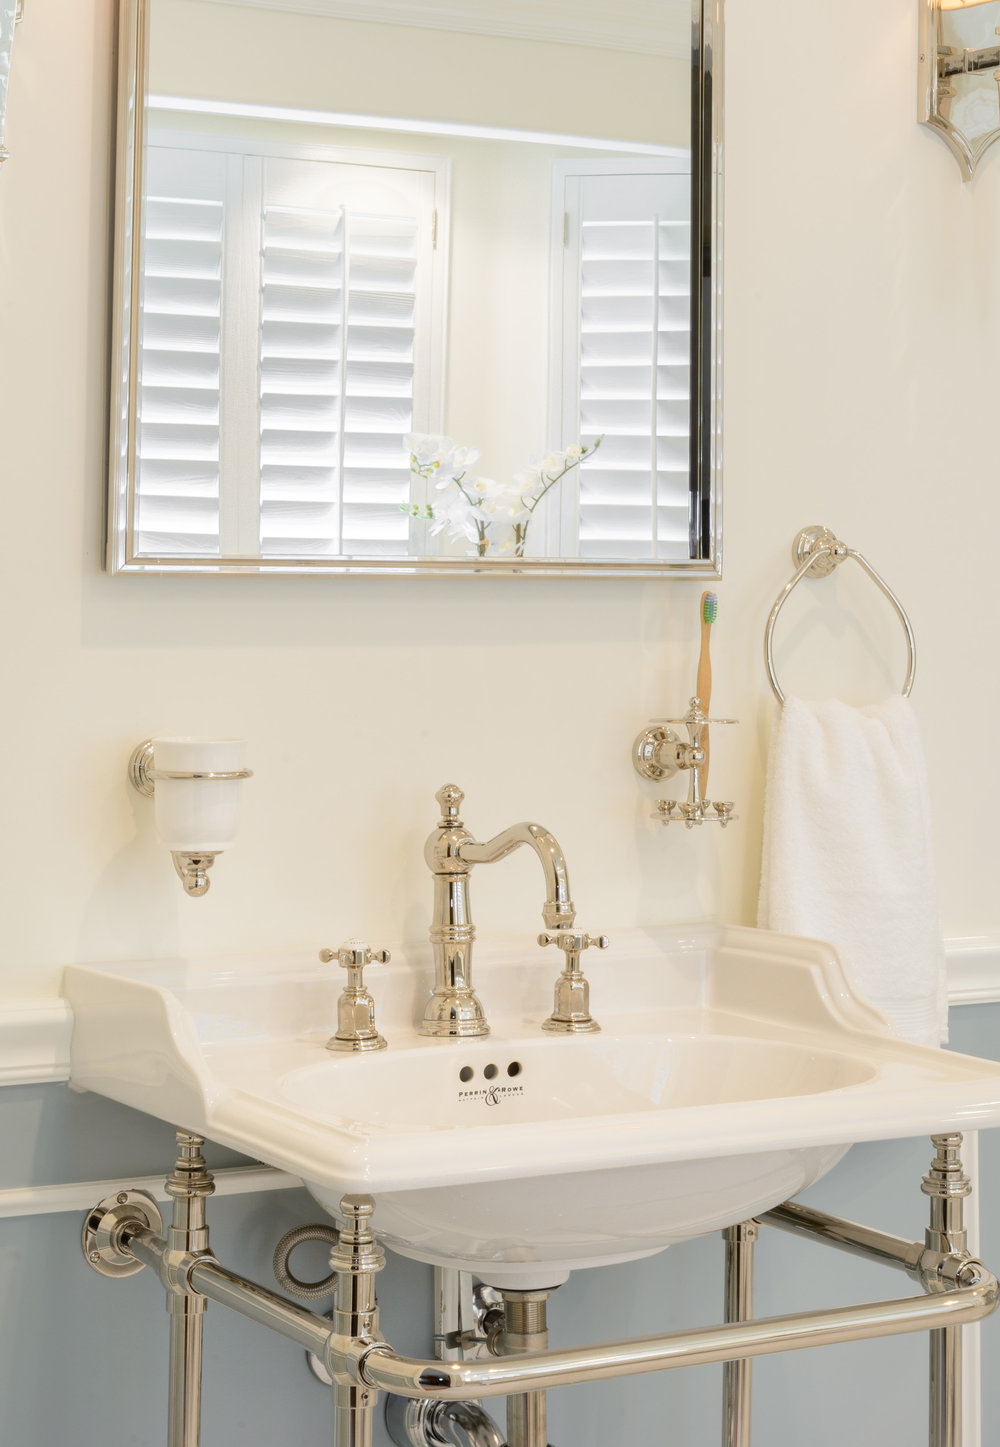 Victorian sophistication: white console sink, traditional widespread faucet, framed mirror, white wall with soft grey wainscot